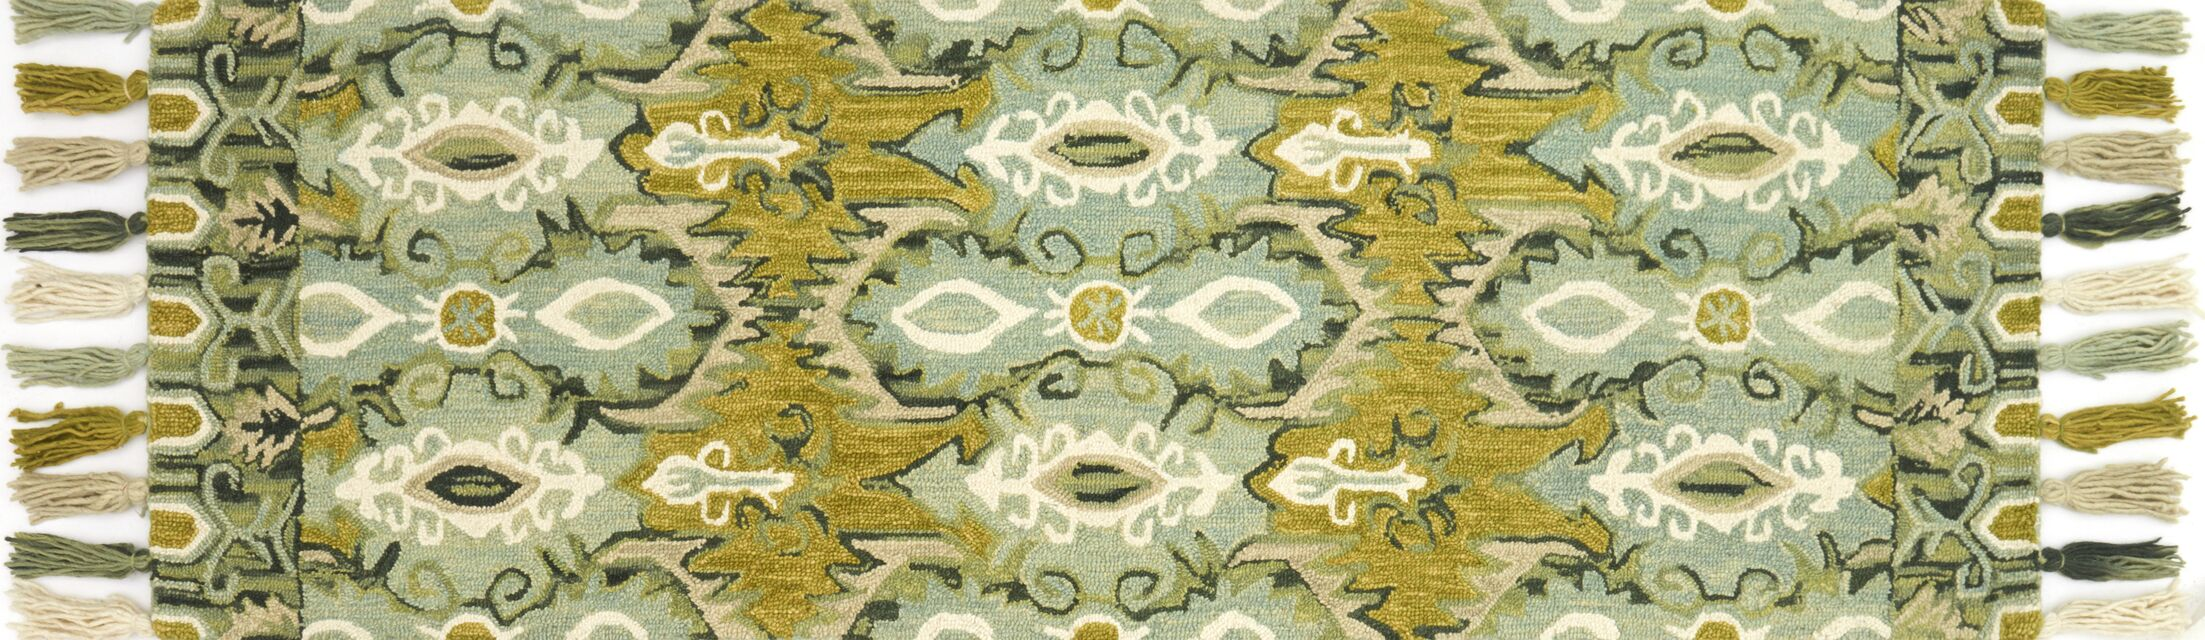 Zambrana Blue/Green Area Rug Rug Size: Rectangle 5' x 7'6